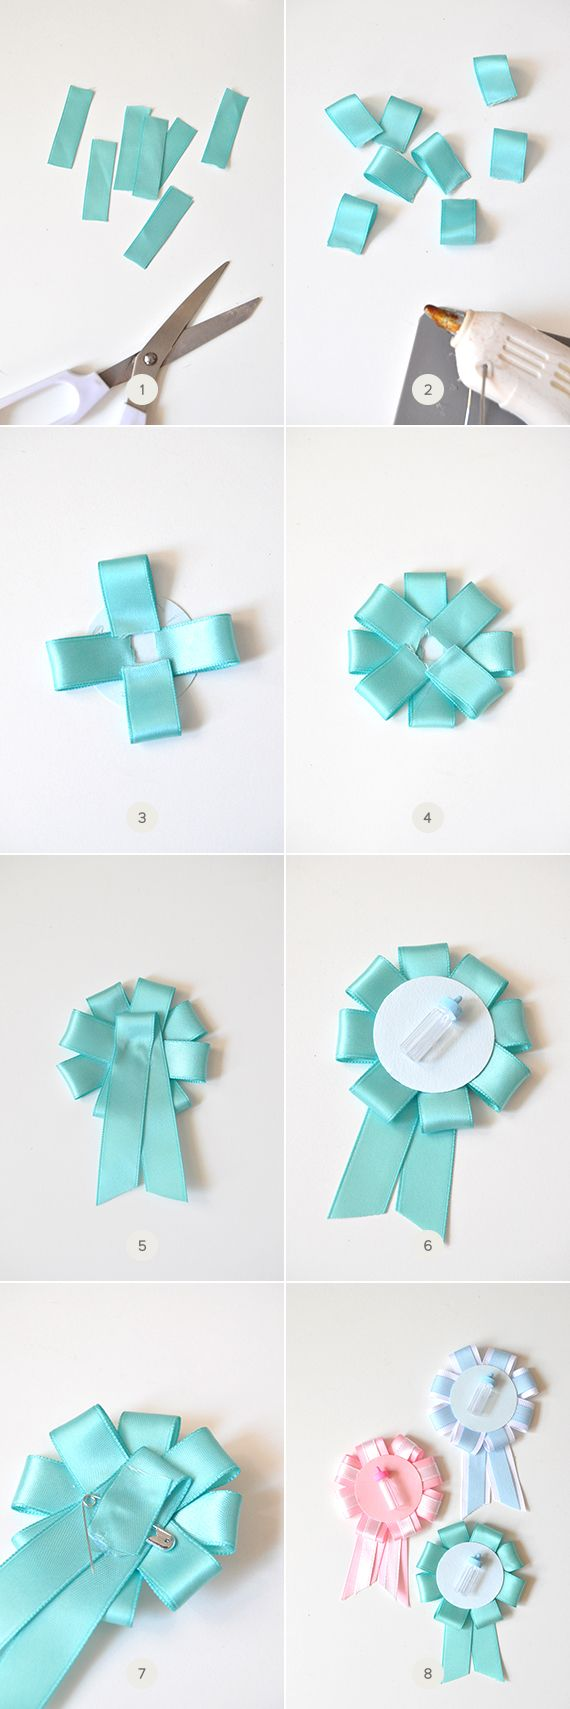 DIY: Gender-Reveal Baby Shower Pins